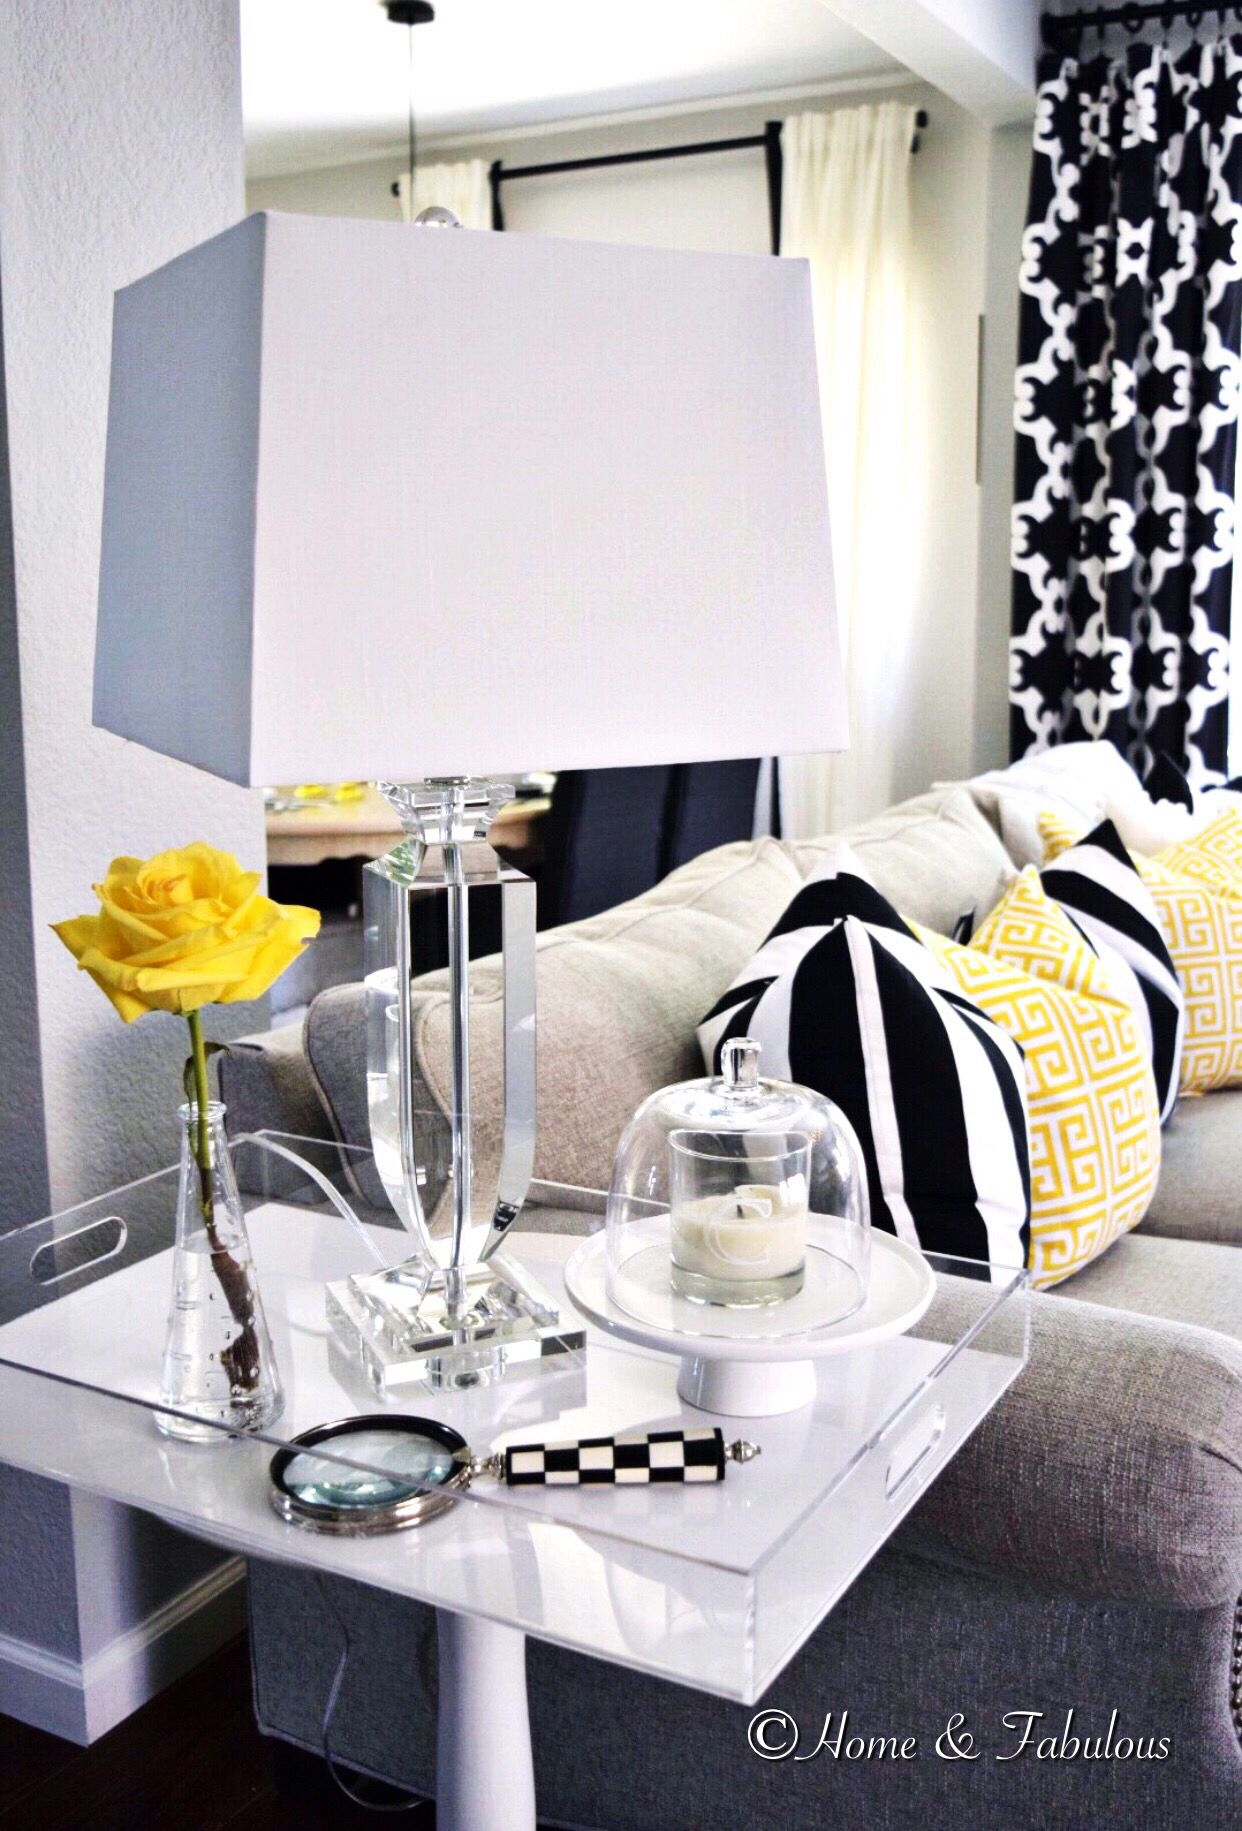 Give your side table a modern twist by adding an acrylic tray on top and crystal lamp like this one from homegoods sponsored pin